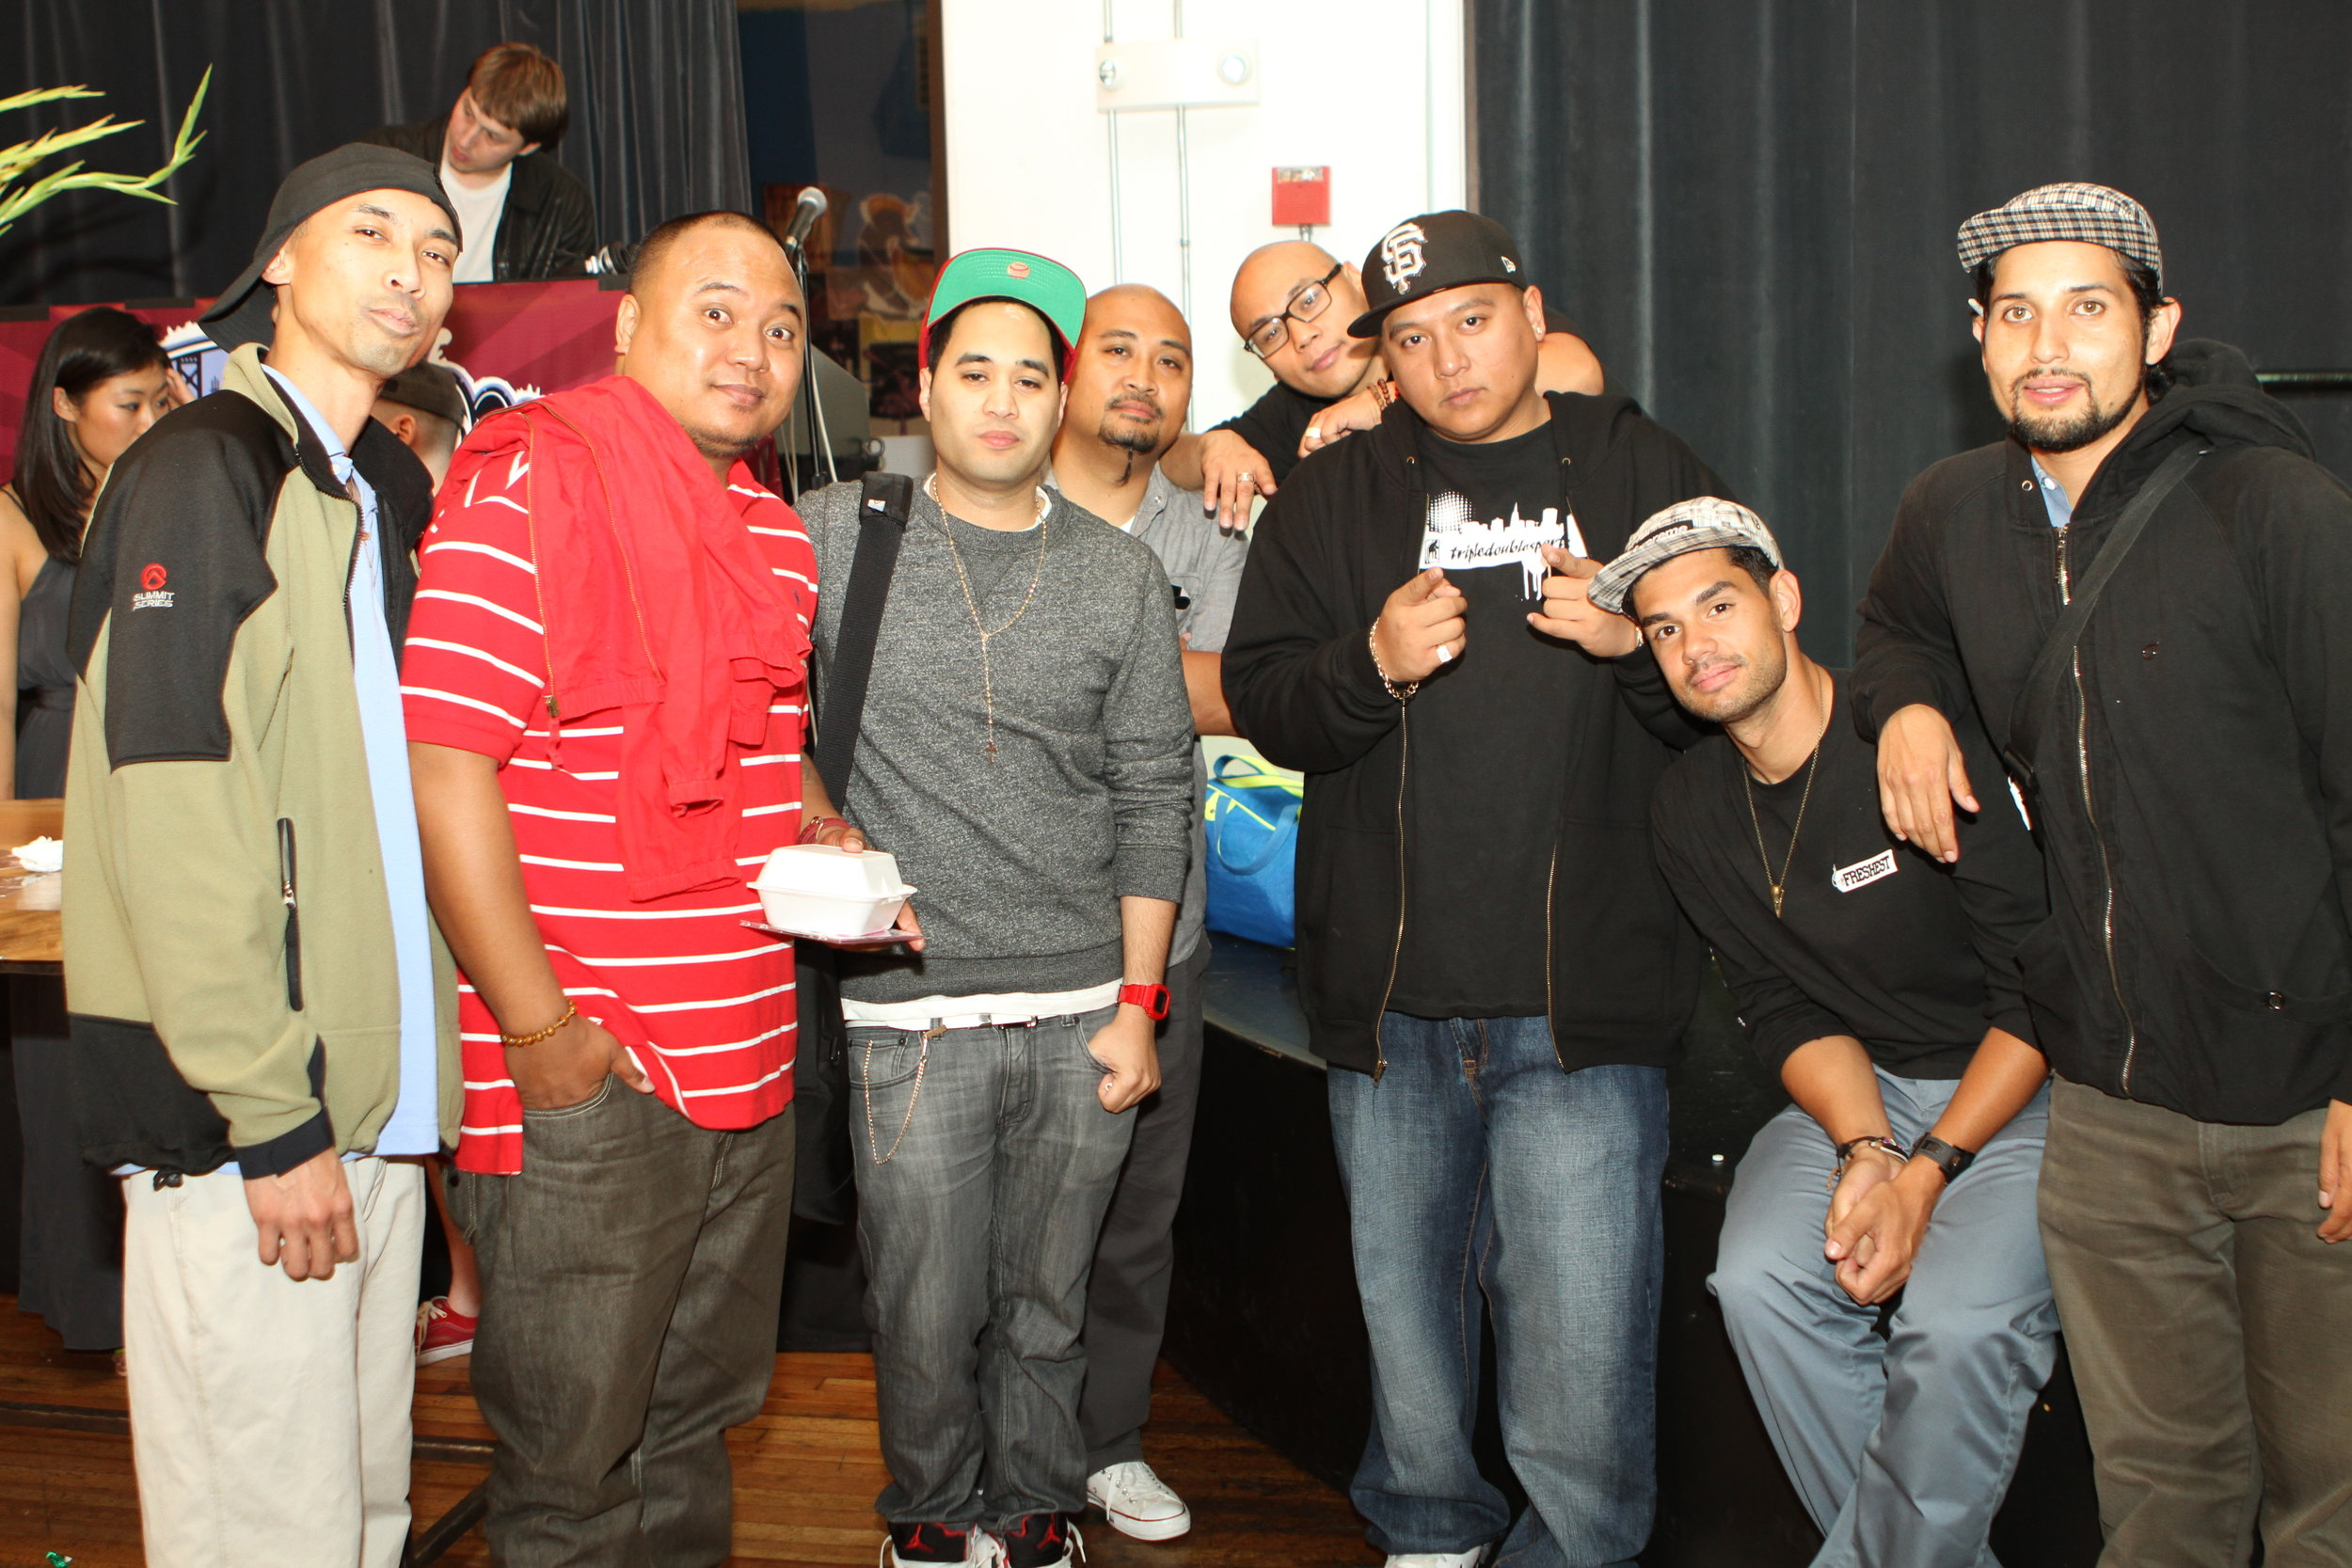 Ariel, Kuya Rols, Prince Aries, Neil Armstrong, Brian Velasquez, DJ Marvel, and King Most